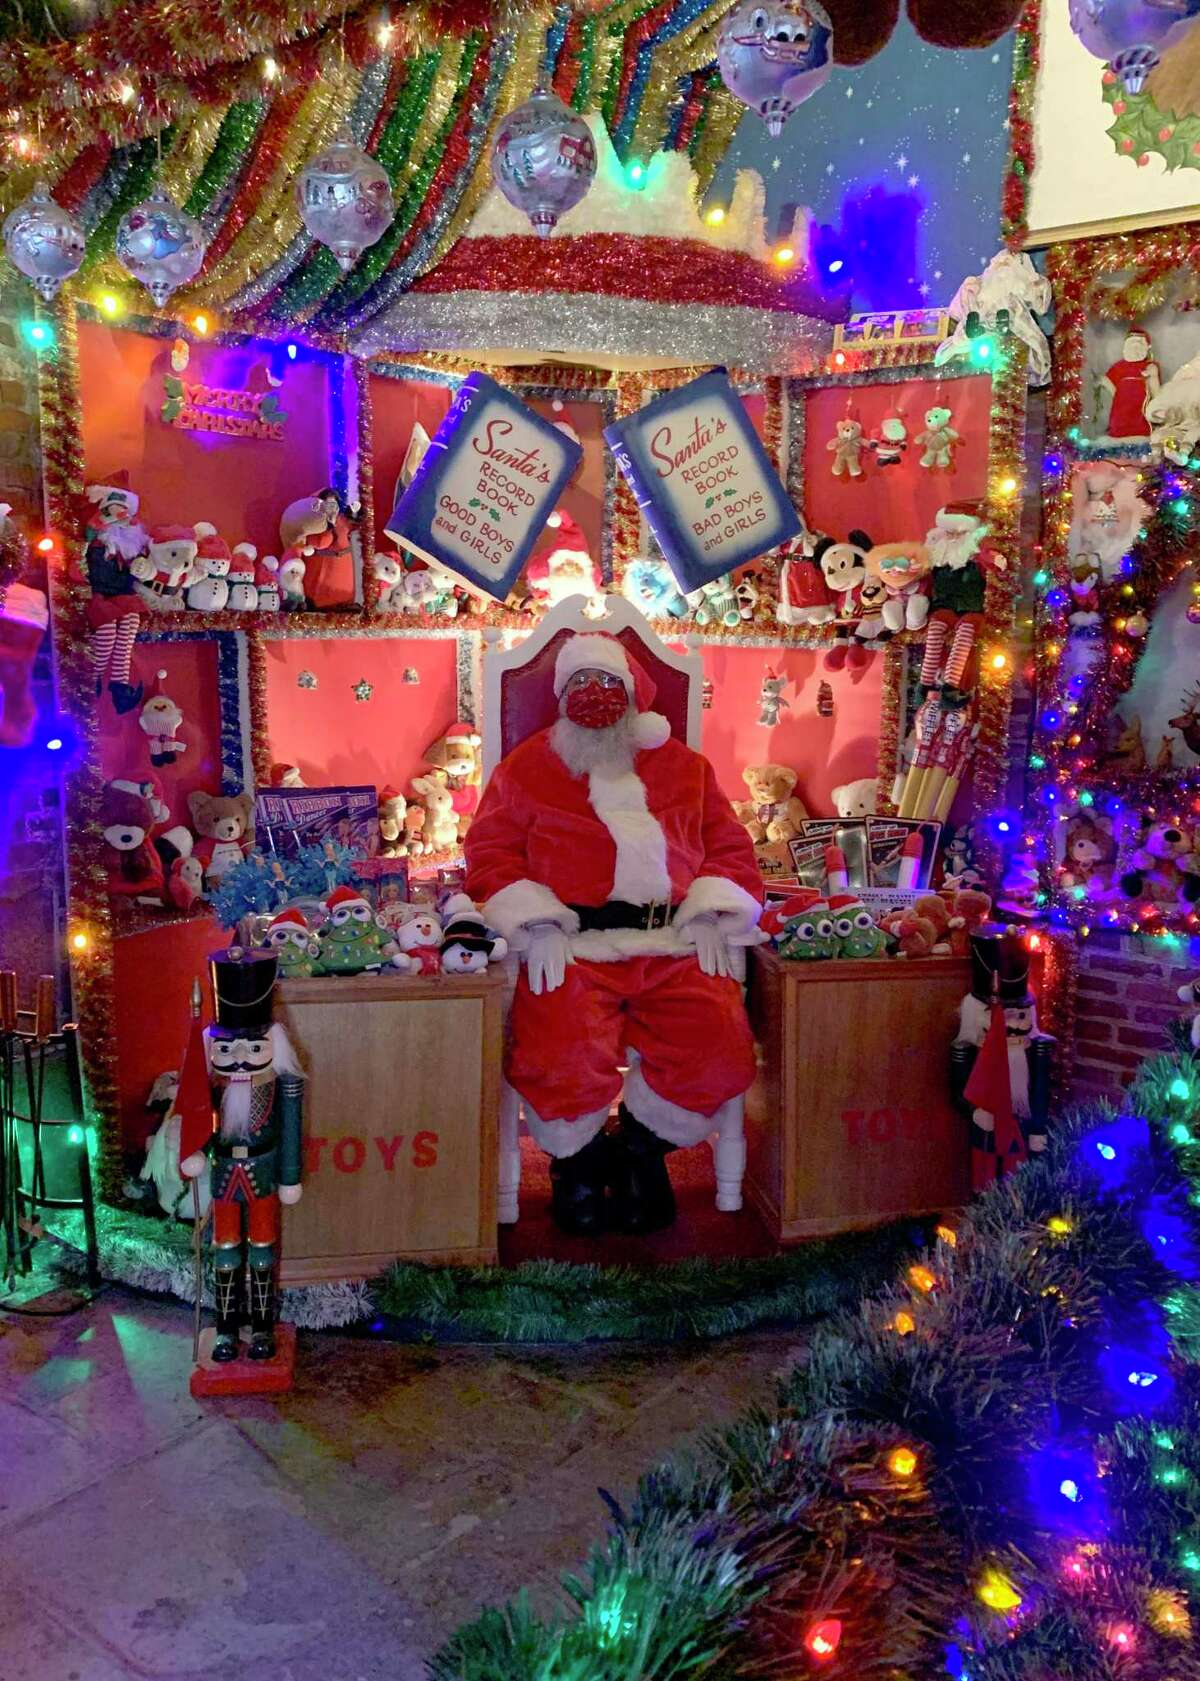 Torrington's Christmas Village opened Sunday and is open daily until Christmas Eve. Because of the COVID-19 pandemic, all visitors had to make advance reservations. Above, Santa Claus waits for visitors in his special toy room at the village.